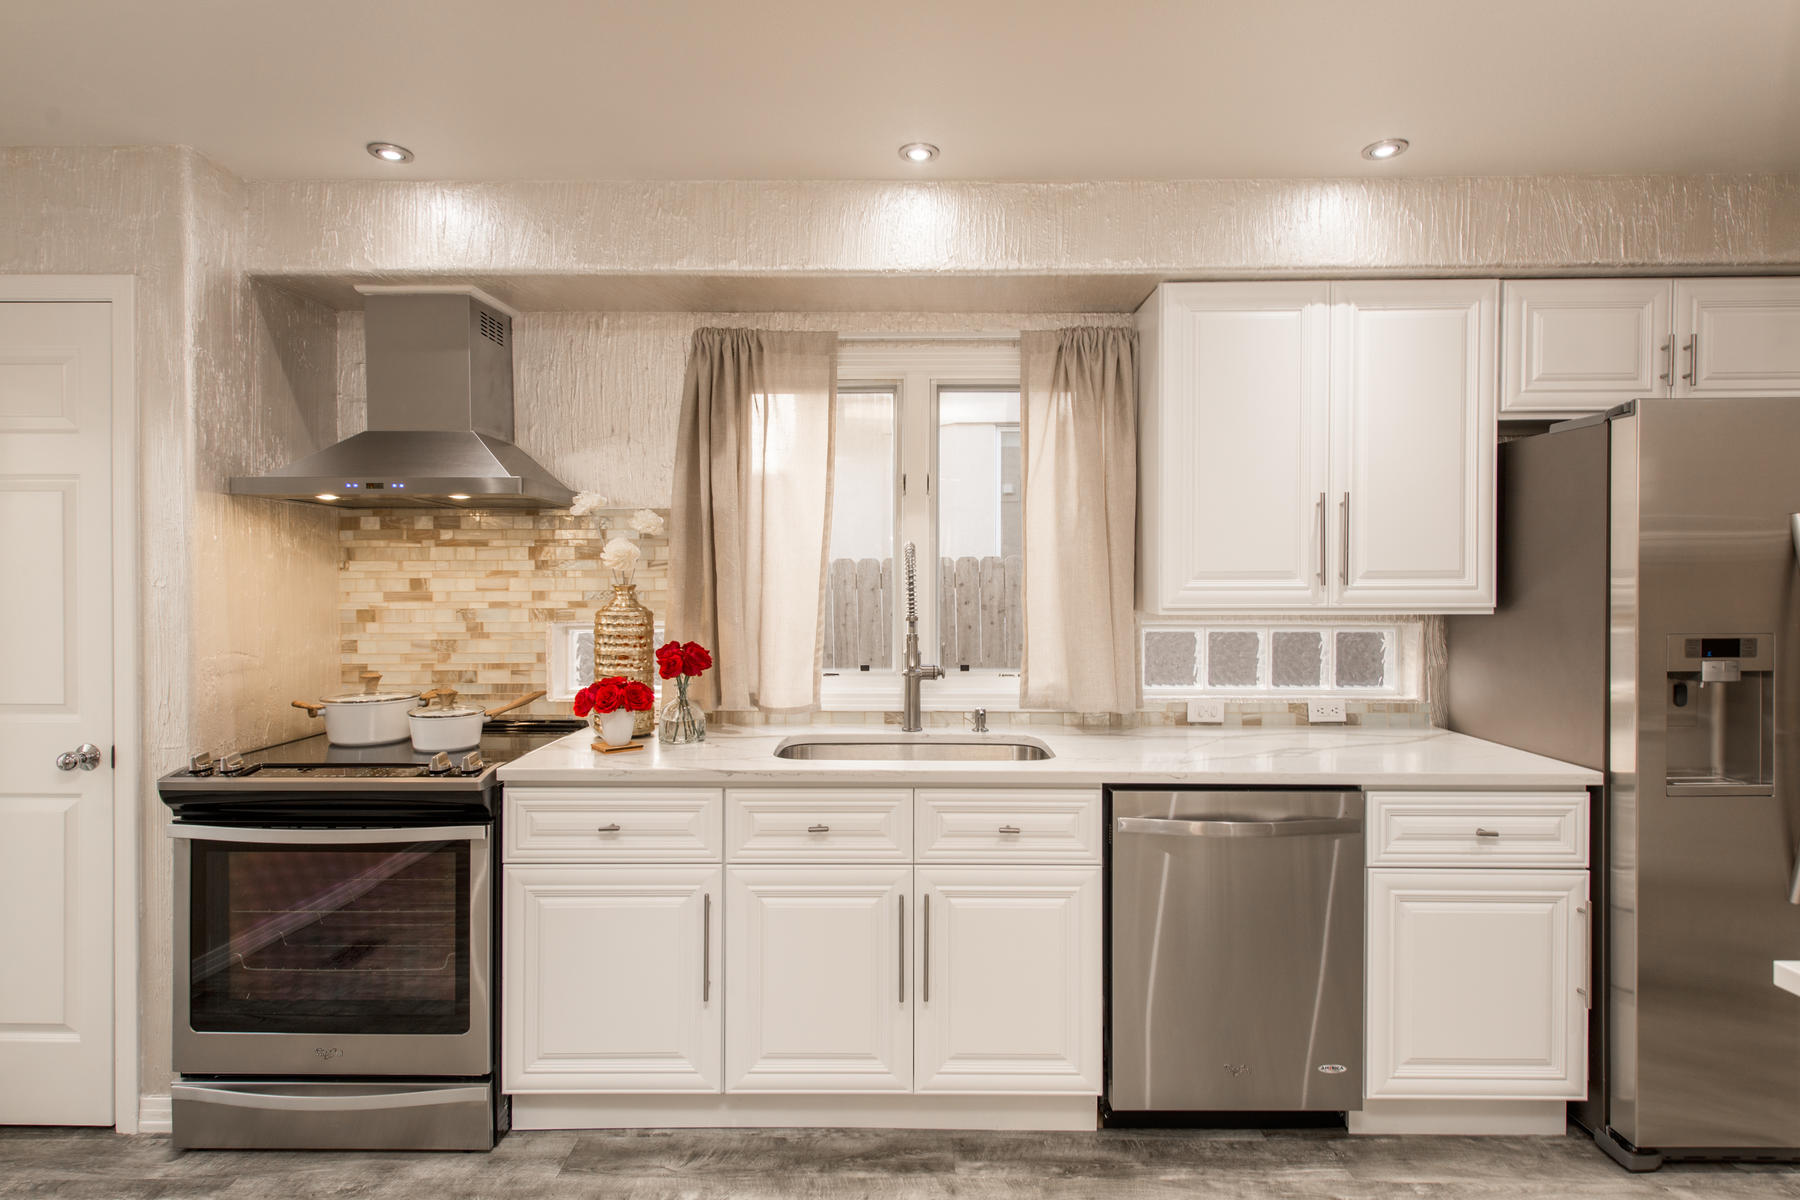 Additional photo for property listing at Remarkable Remodel In Denver's Cherry Creek 251 South Garfield Street #F Denver, Colorado 80209 United States